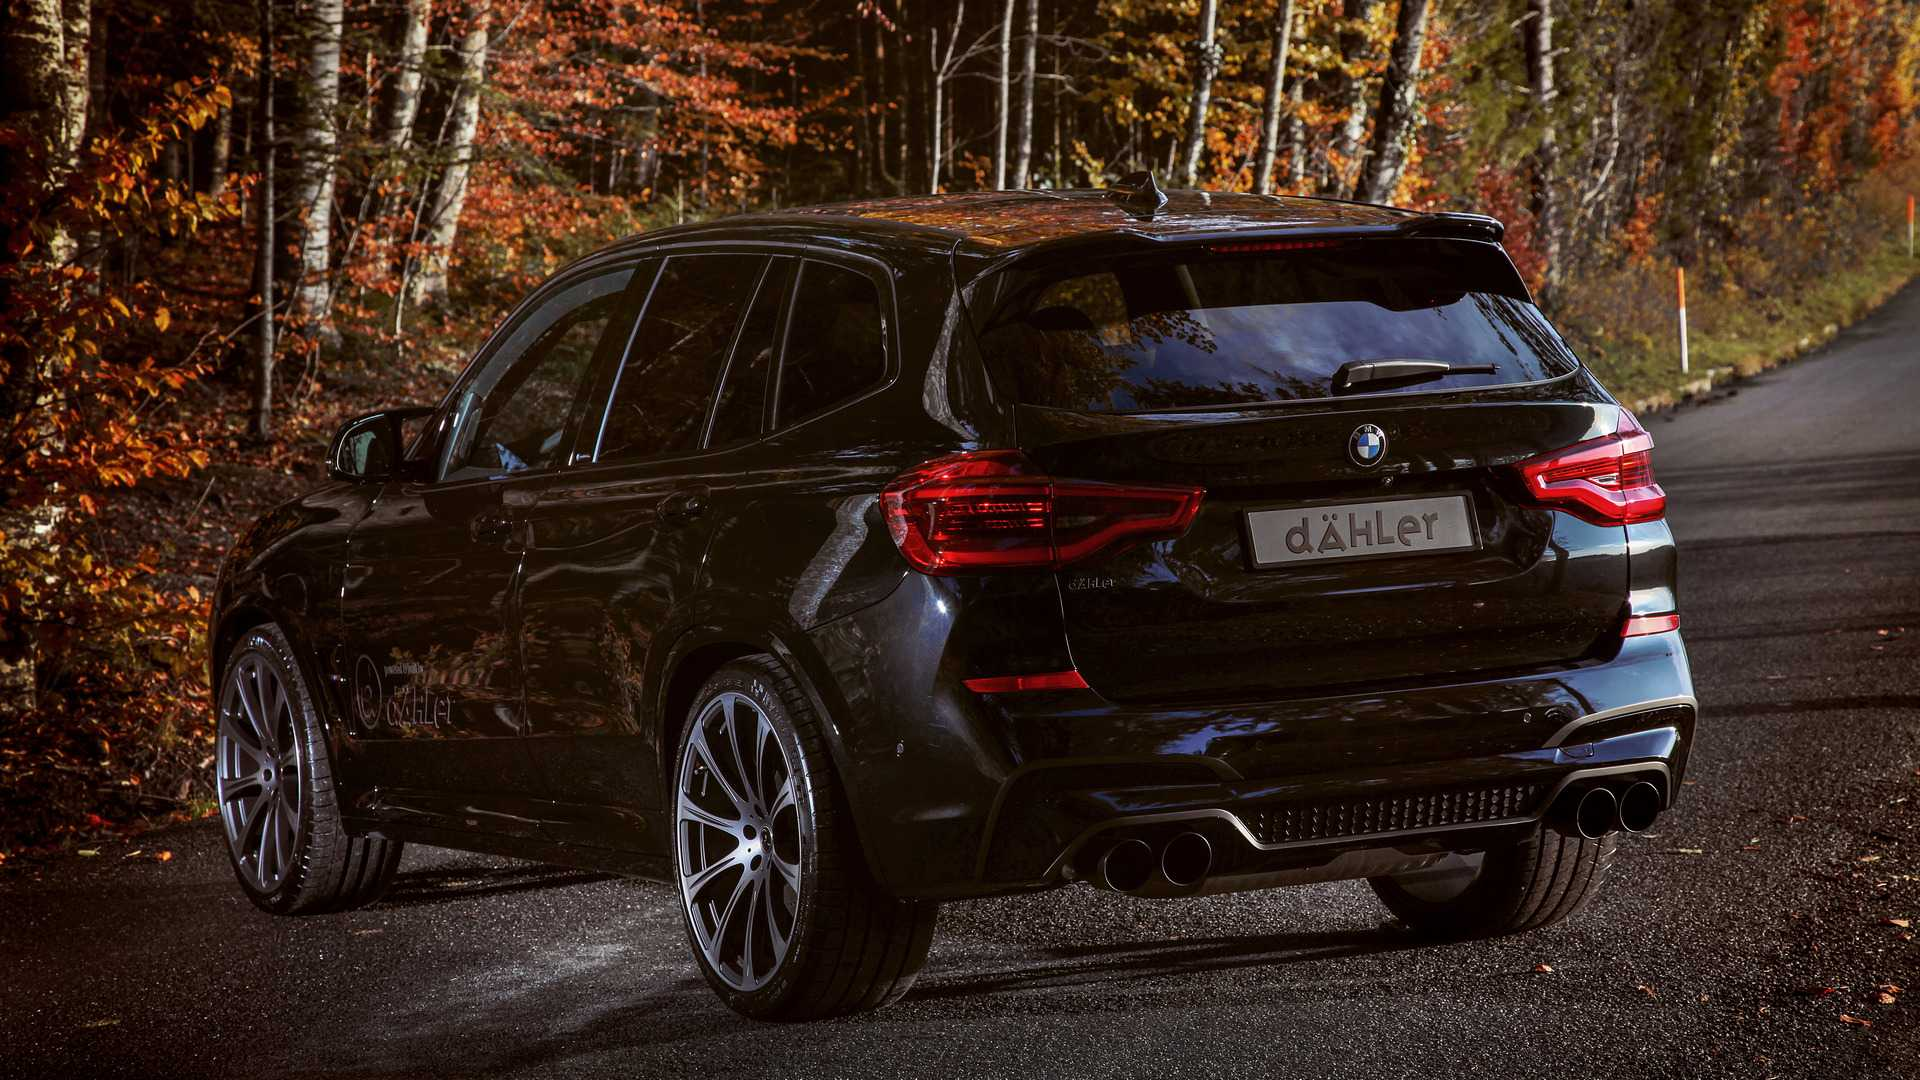 BMW_X3_M_and_X4_M_by_Dahler_0007